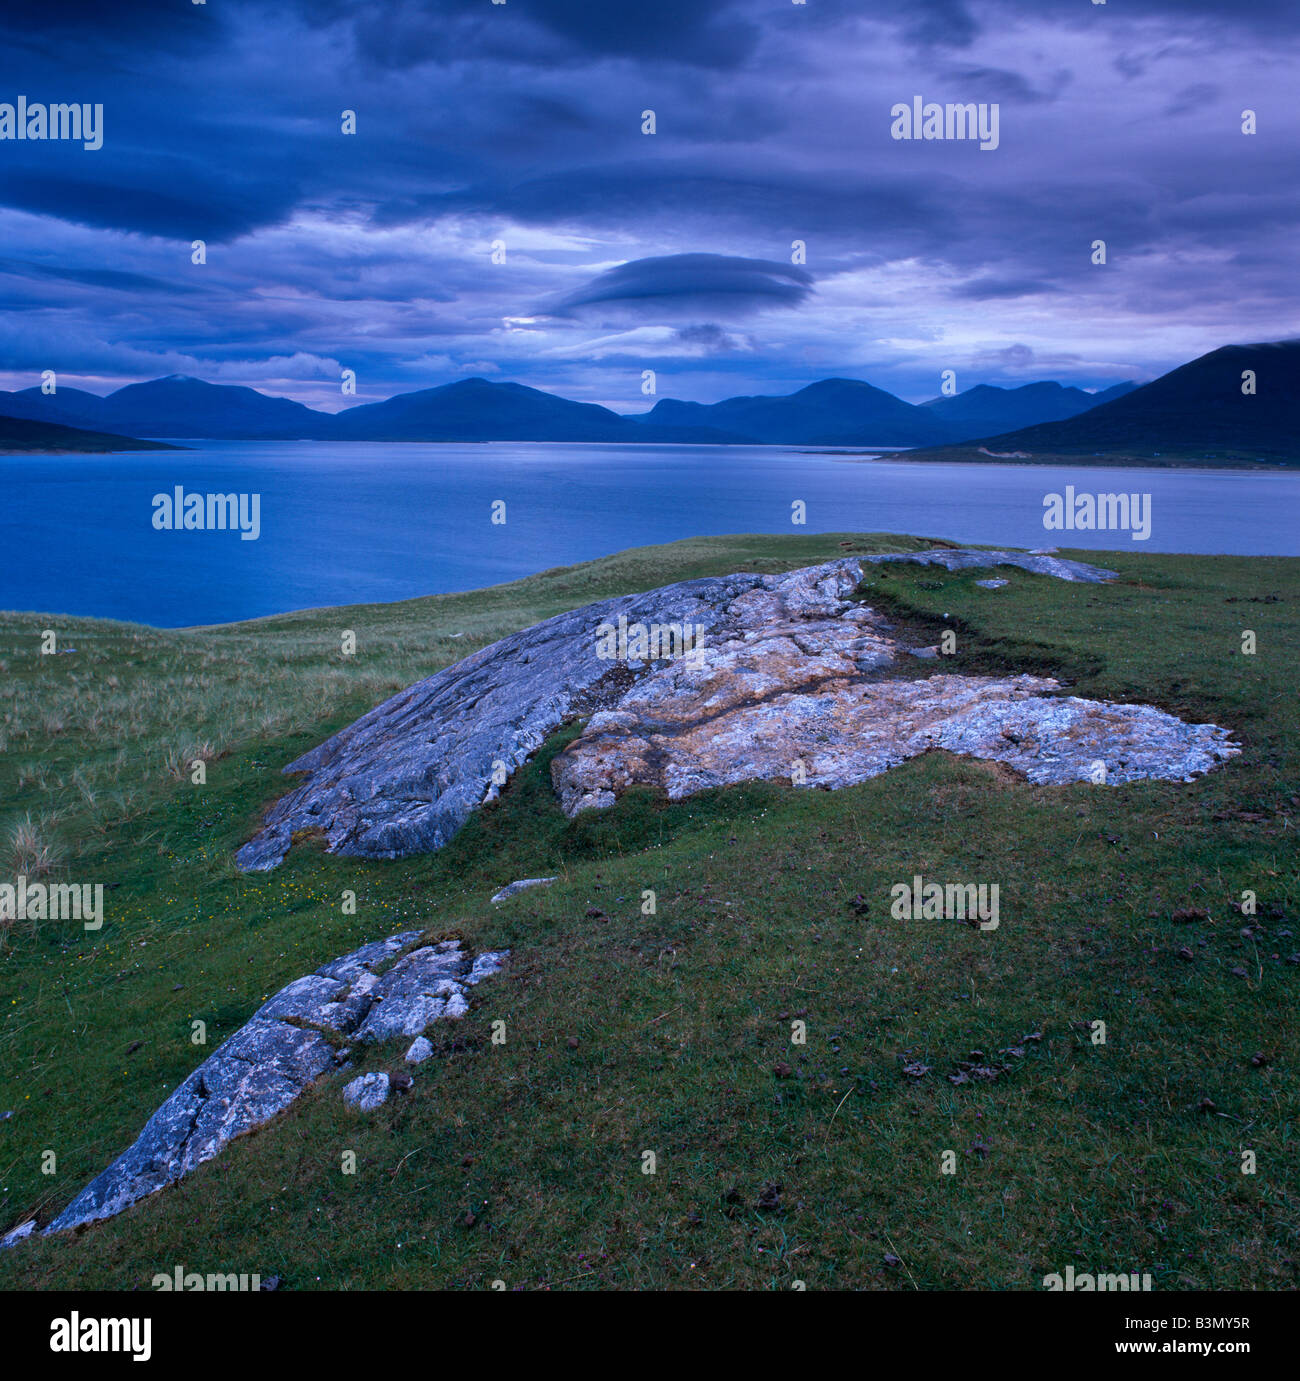 View across the Sound of Taransay from the Isle of Harris, Western Isles, Scotland - Stock Image